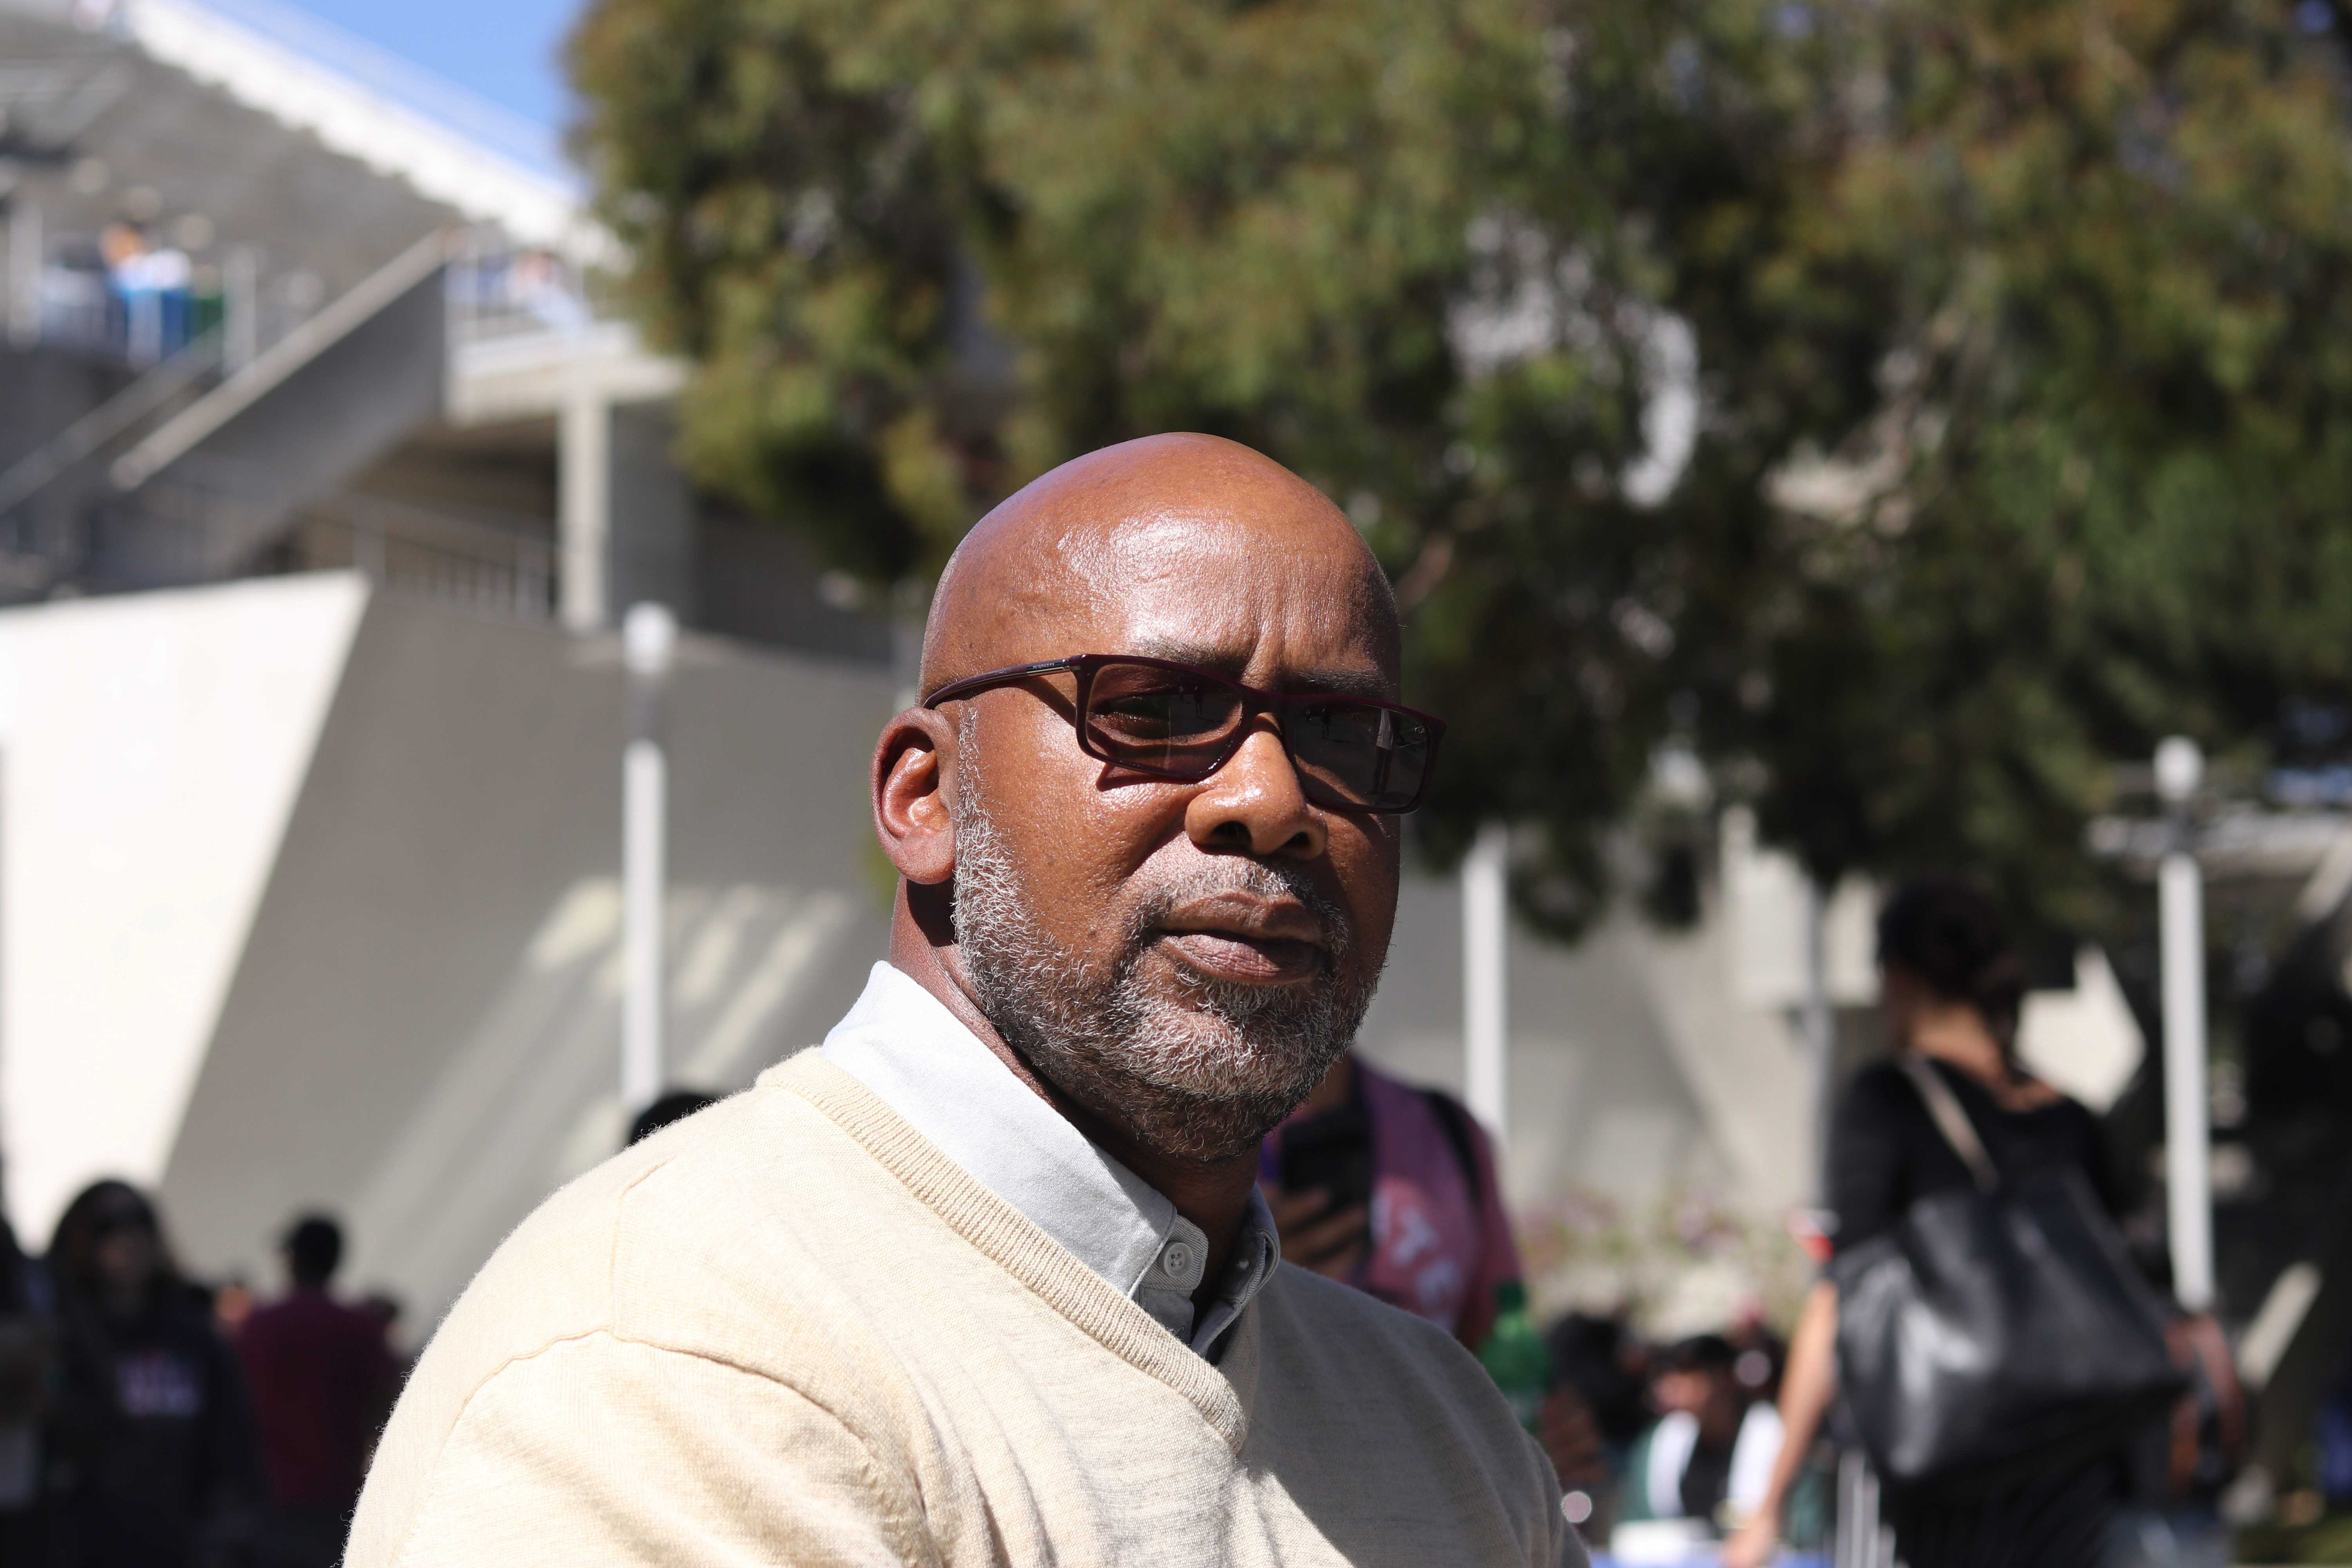 Orlando Harris, Director of Career Services and Leadership Development, has his portrait taken near Malcolm X Plaza at SF State's on Sept. 10, 2018. (Oscar Rendon/Golden Gate Xpress)